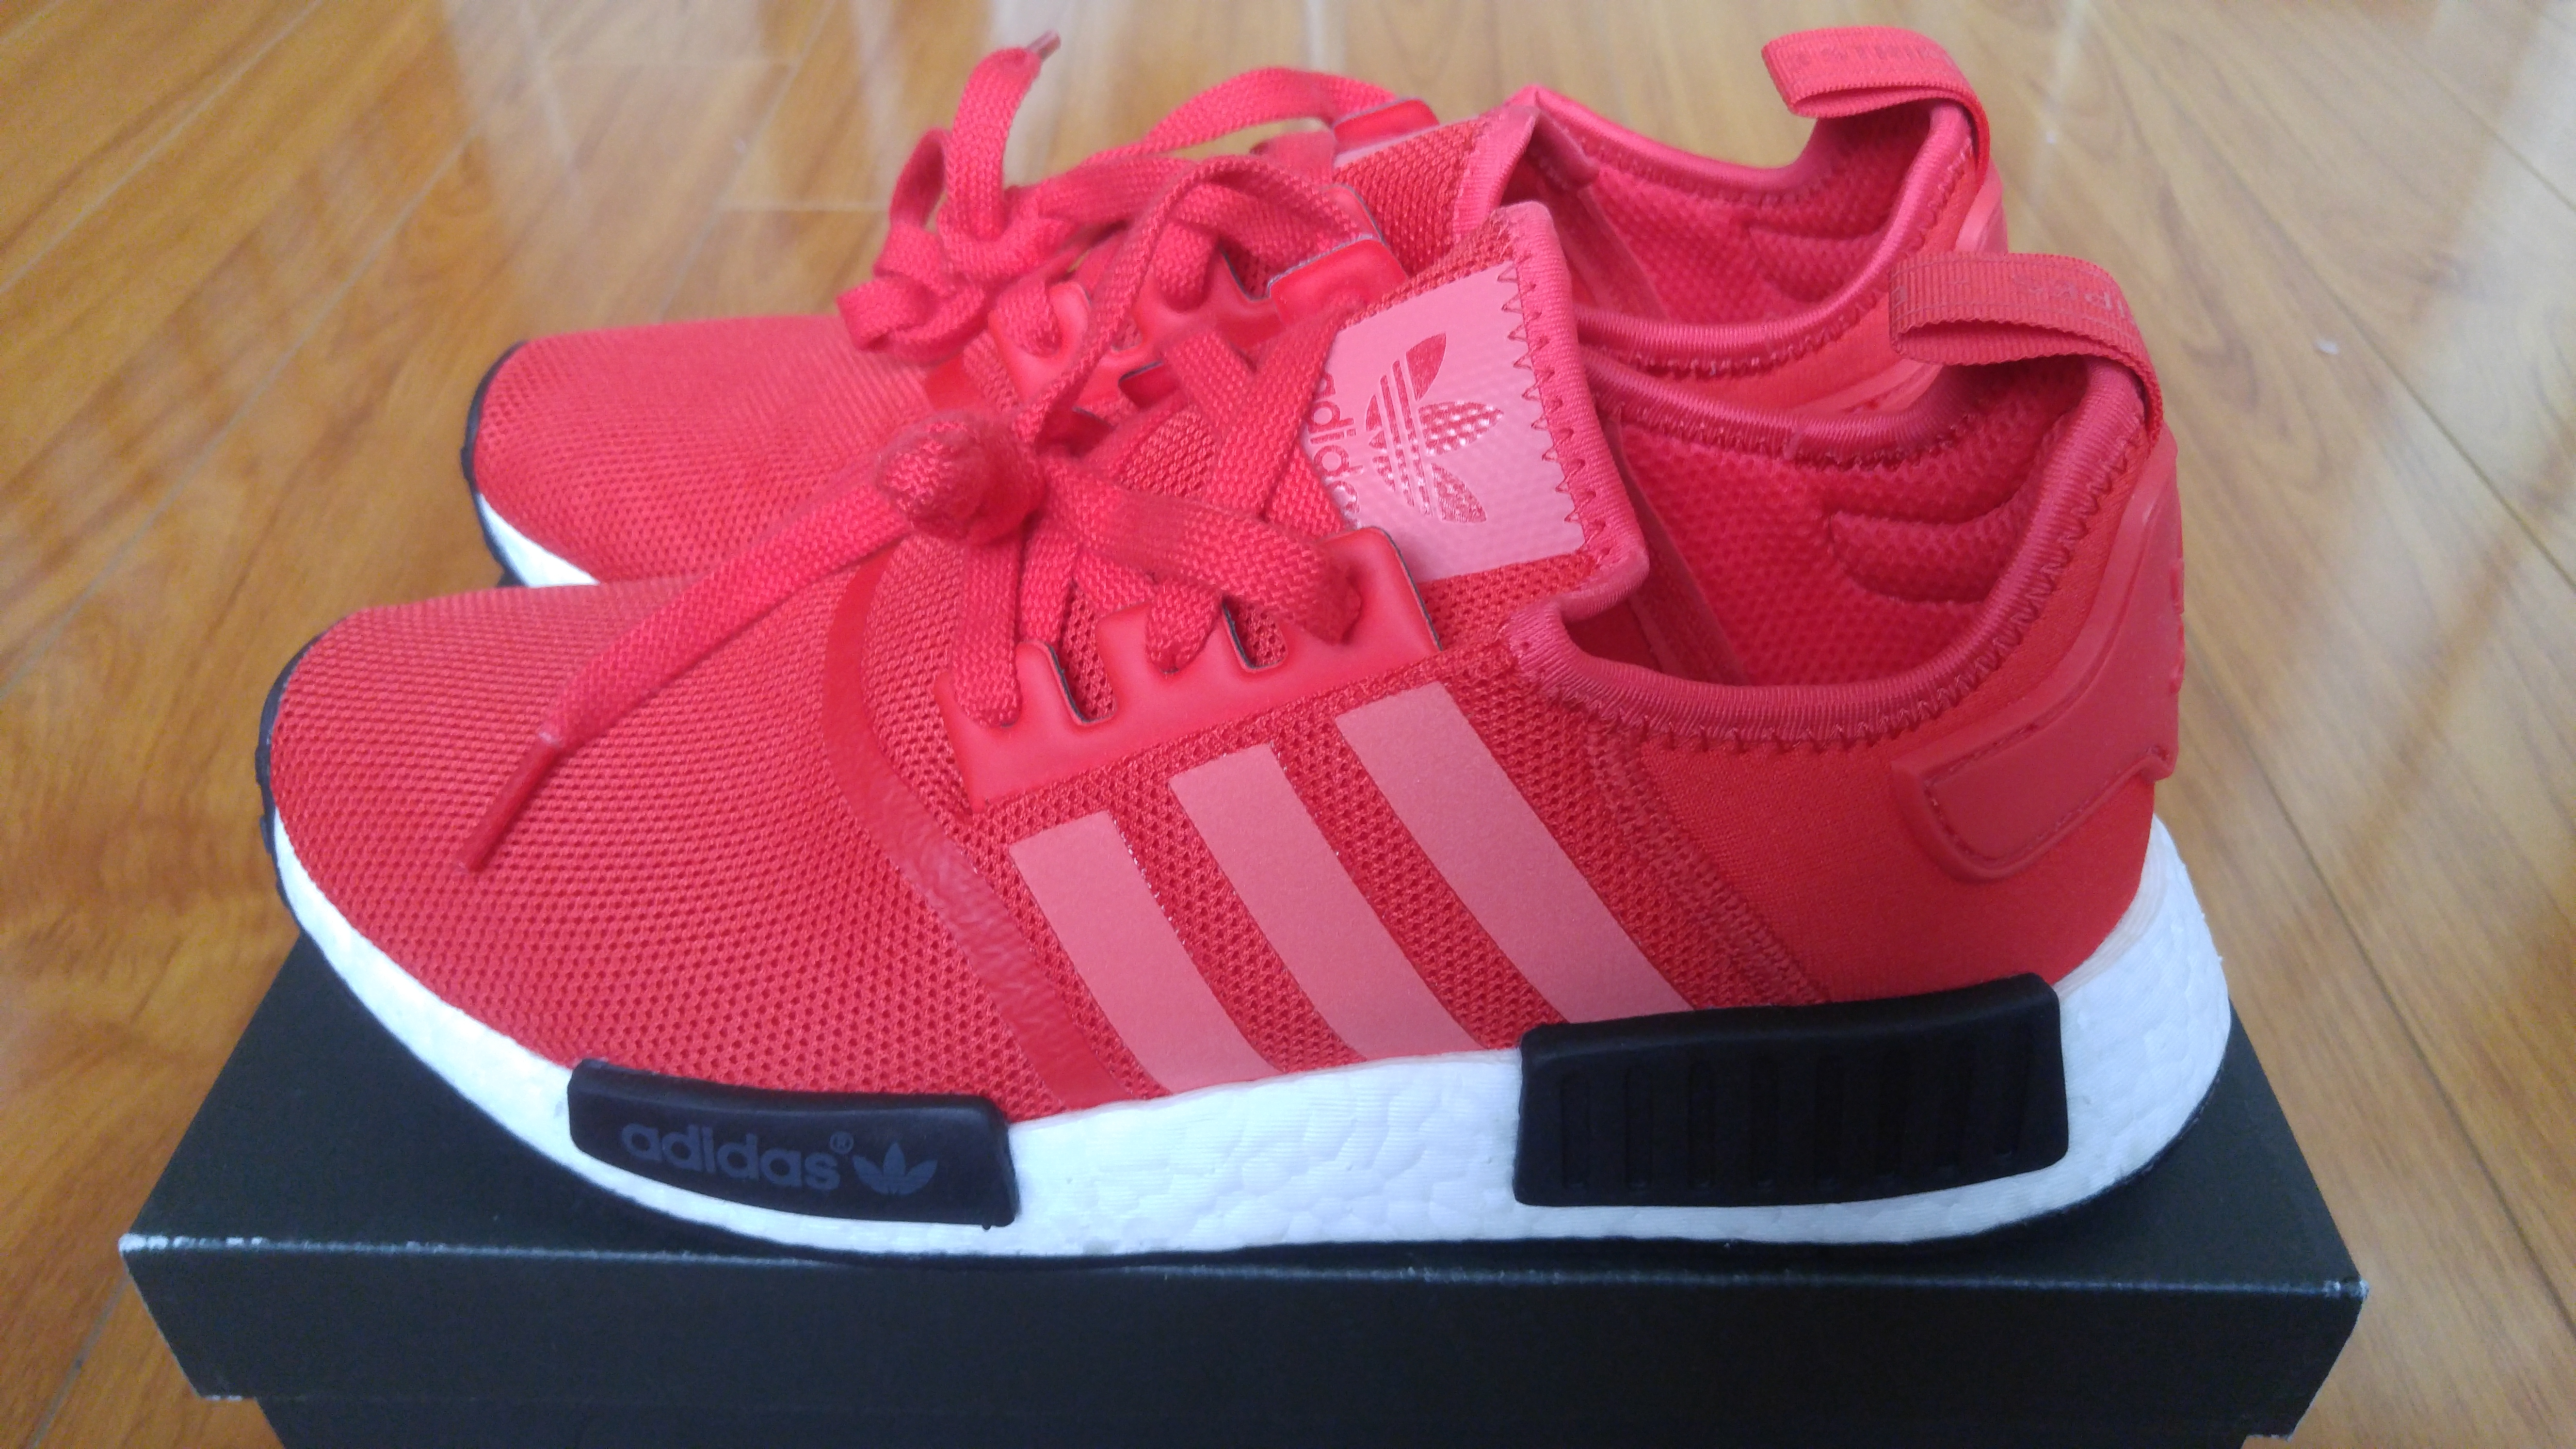 Adidas Adidas NMD R1 Red (3M) Size 9 Low Top Sneakers for